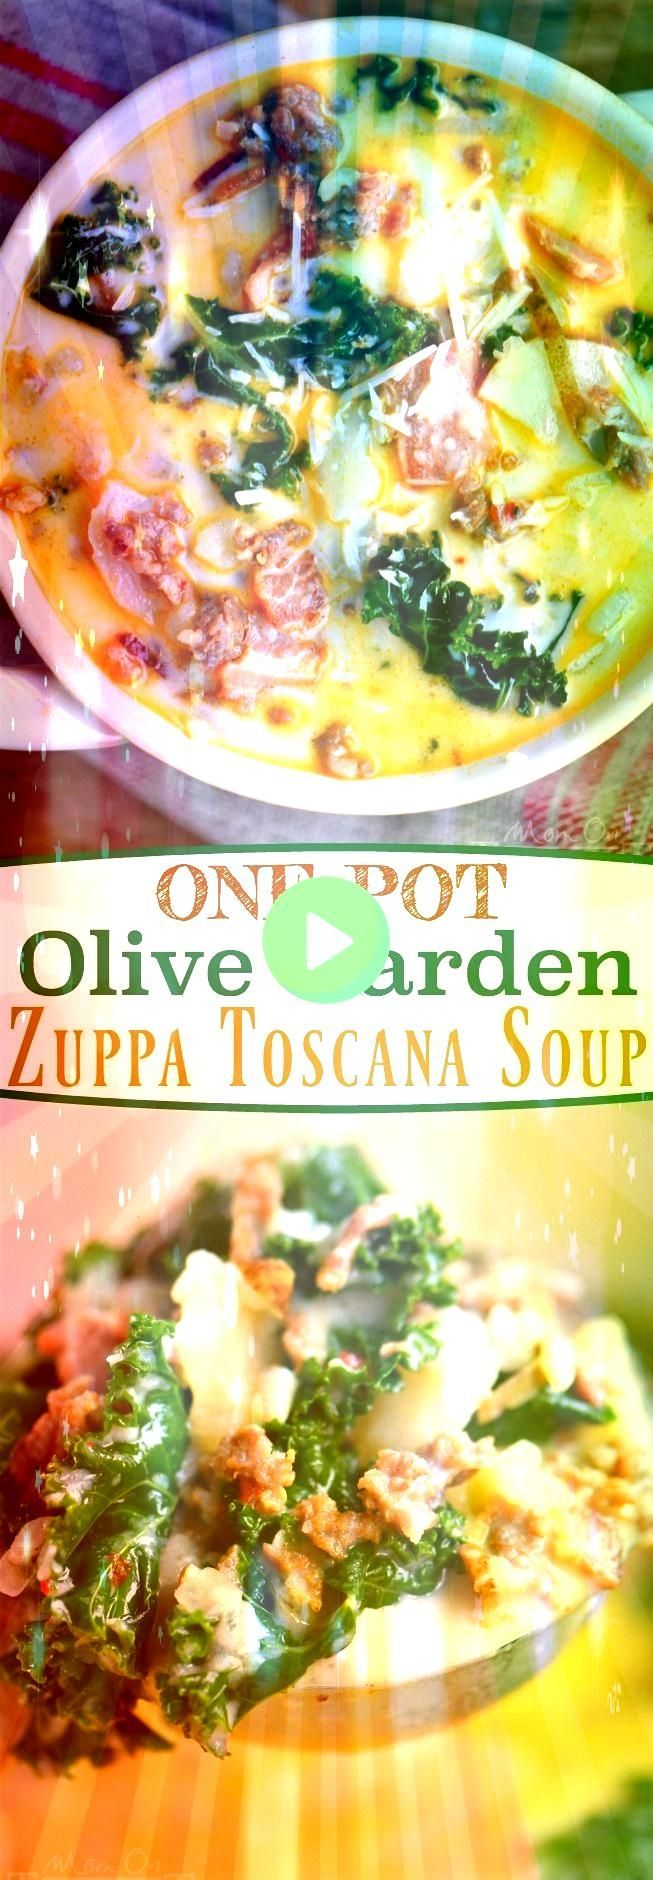 #zuppatoscana #timeoutone #delicious #loadedone #potatoes #sausage #toscana #comfort #filling #recipes #timeout #recipe #family #dinner #gardenPot Olive Garden Zuppa Toscana Soup! Comfort food at it's best! Loaded with bacon, sausage, potatoes, and kale! So delicious and filling, the whole family will love this soup!  // Mom On TimeoutOne Pot Olive Garden Zuppa Toscana Soup! Comfort food at it's best! Loaded with bacon, sausage, potatoes, and kale! So delicious and filling, the whole fami...Pot  #zuppatoscanasoup